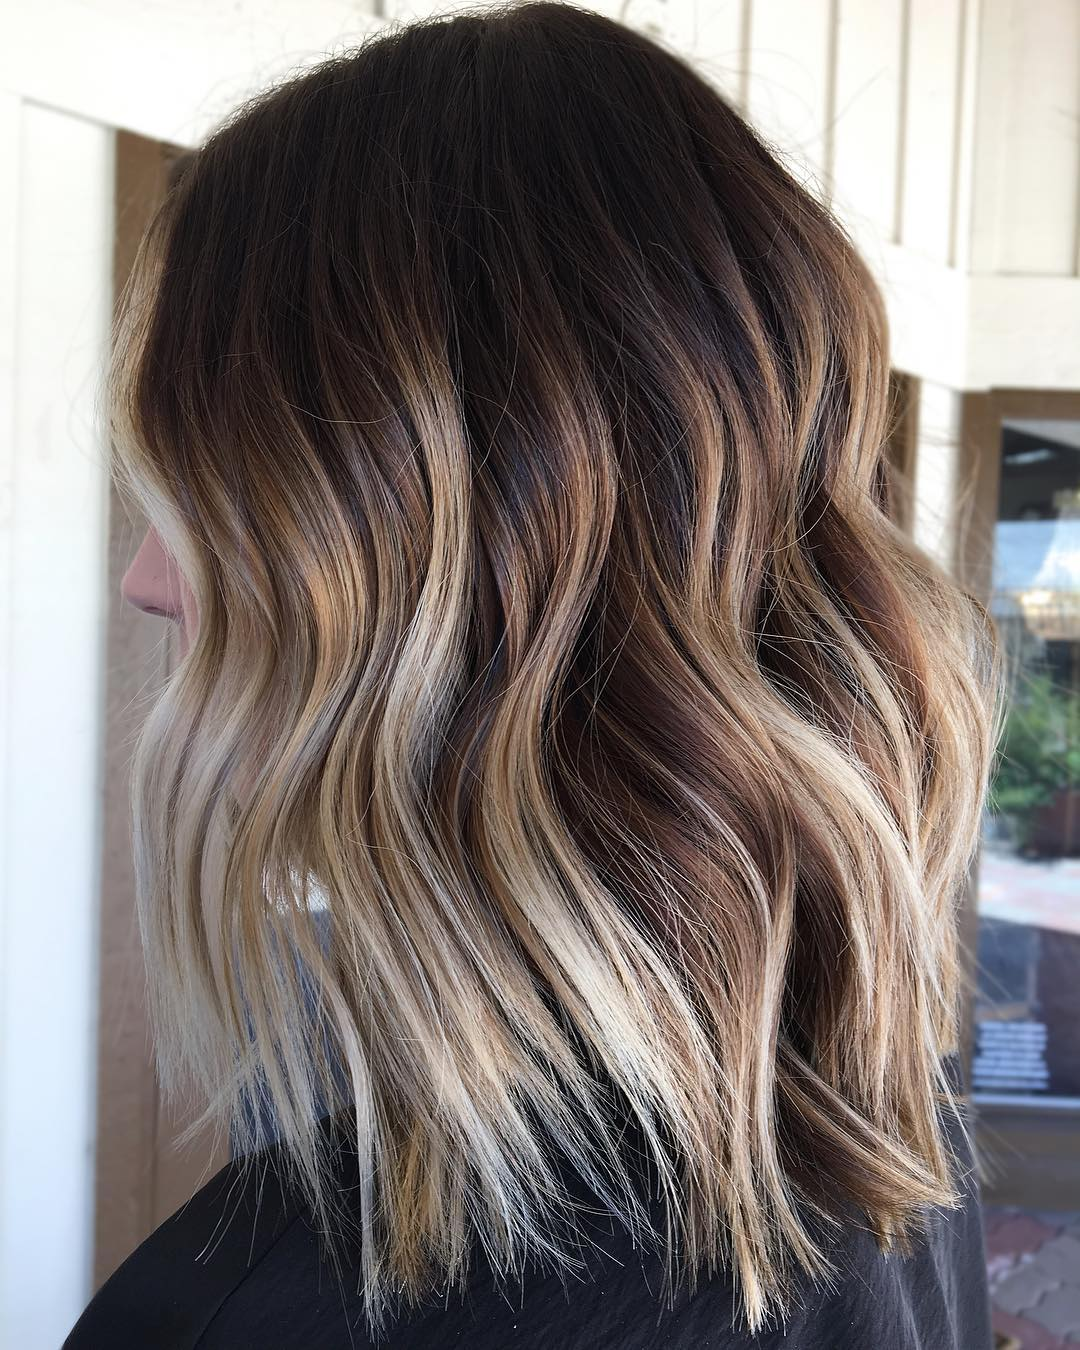 Brown Lob With Blonde Balayage